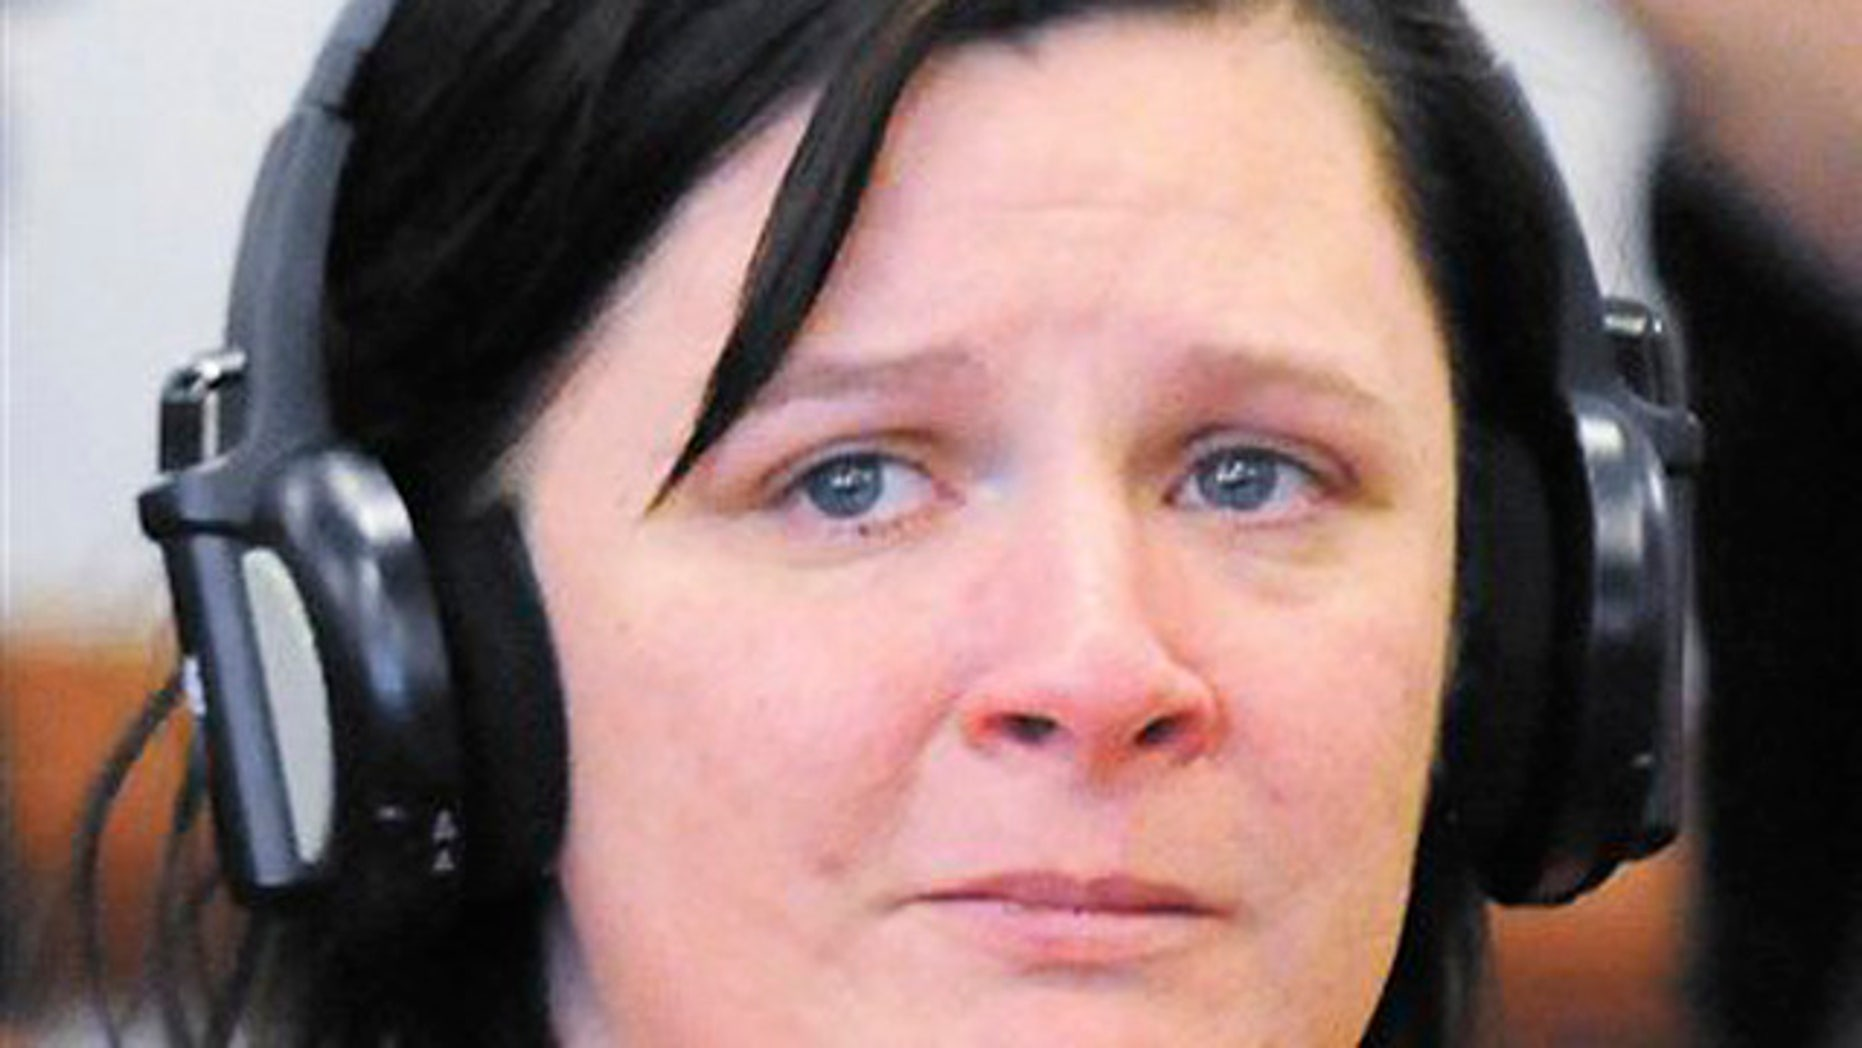 April 19, 2011: In this file photo, Kathy Coy, of Morgantown, Ky., is pictured, who pleaded guilty but mentally ill to killing Jamie Stice, an expectant mother, and taking her baby last year.